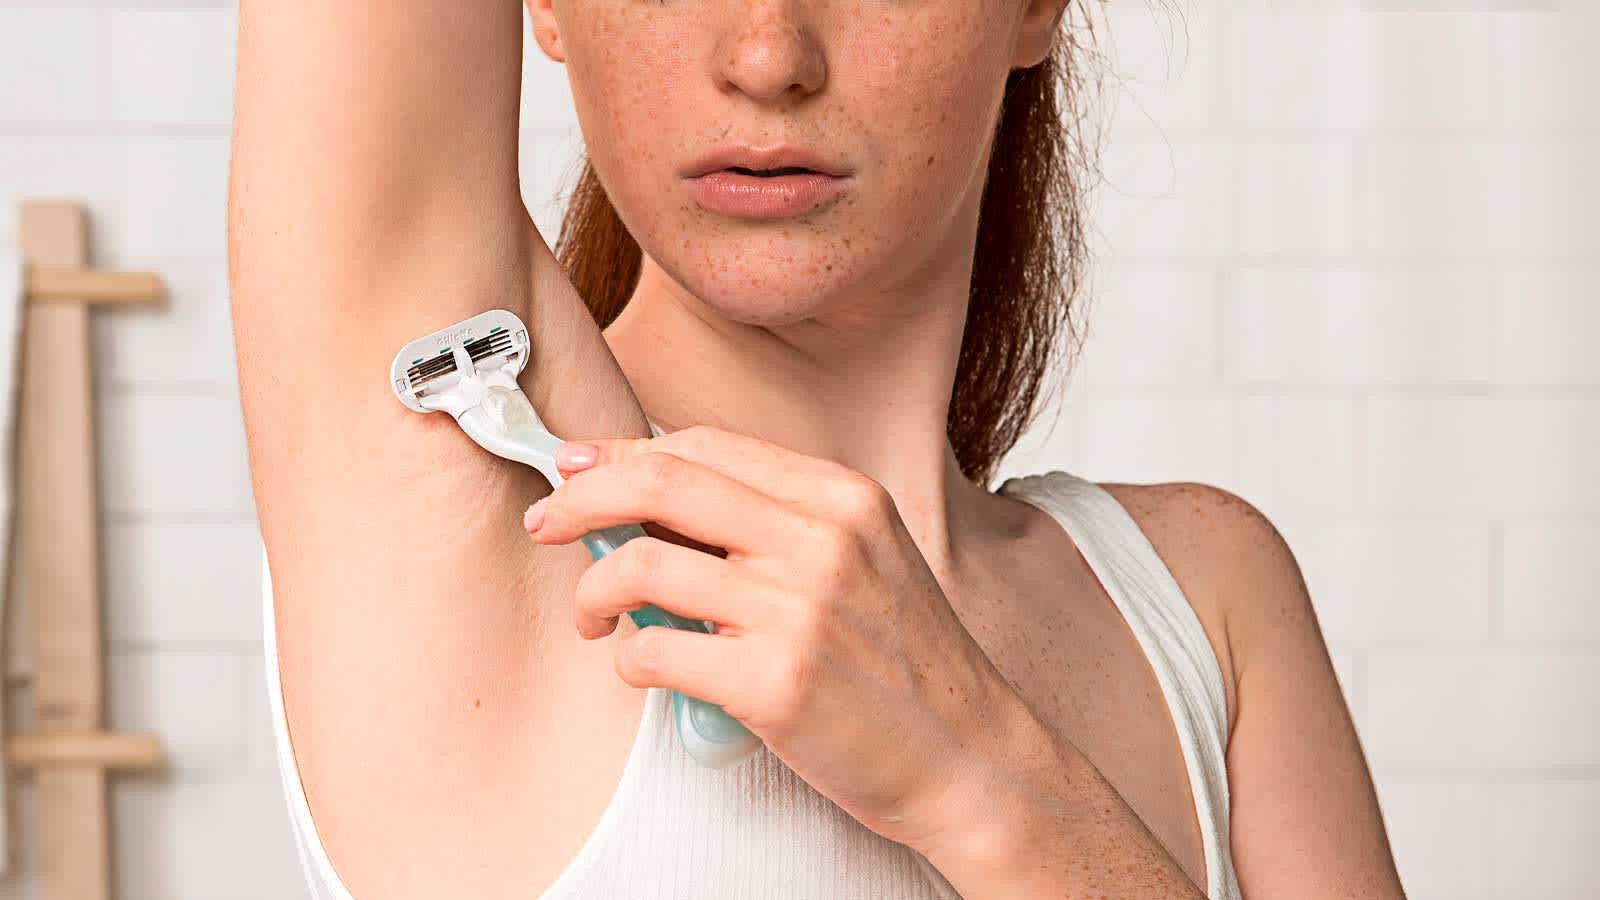 Woman Shaving Her Armpit with Gillette Venus Women's Razor